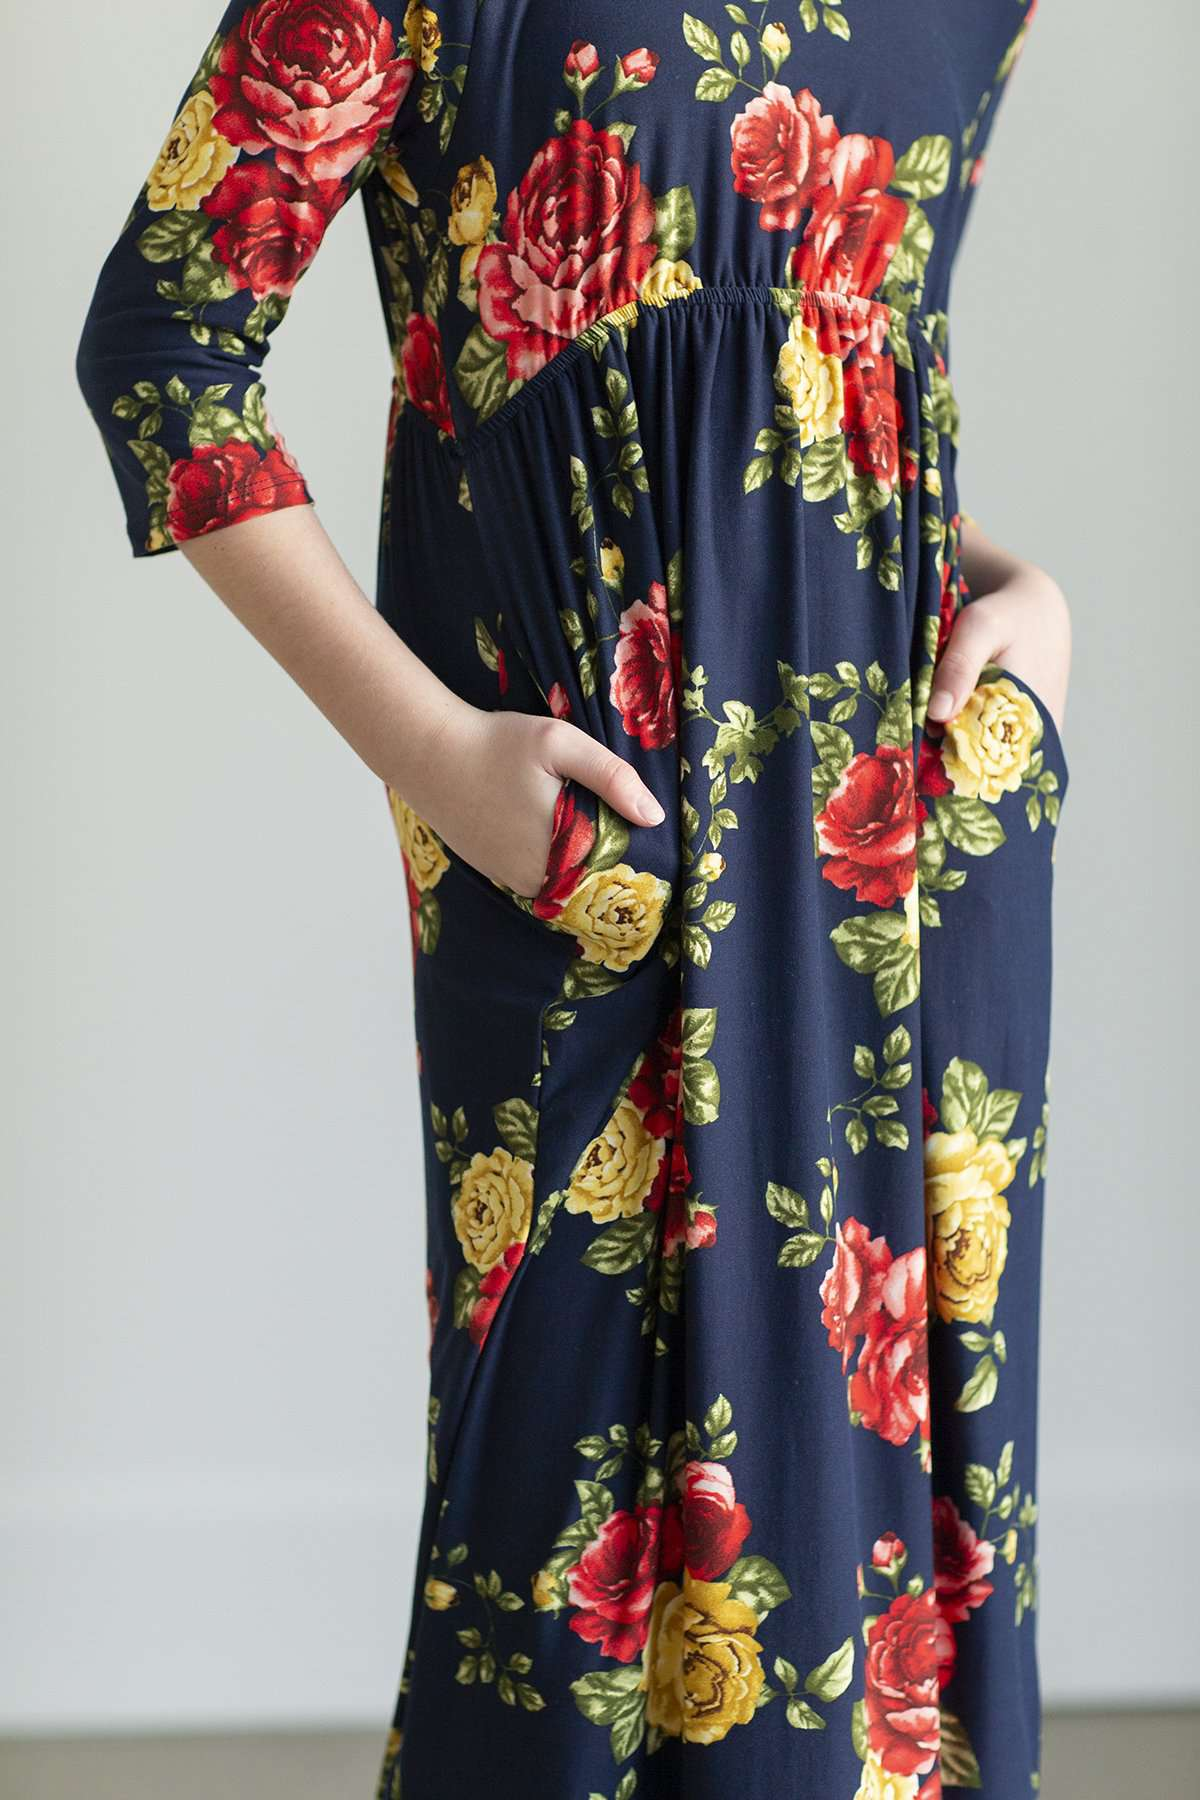 Young girl wearing a navy floral maxi dress